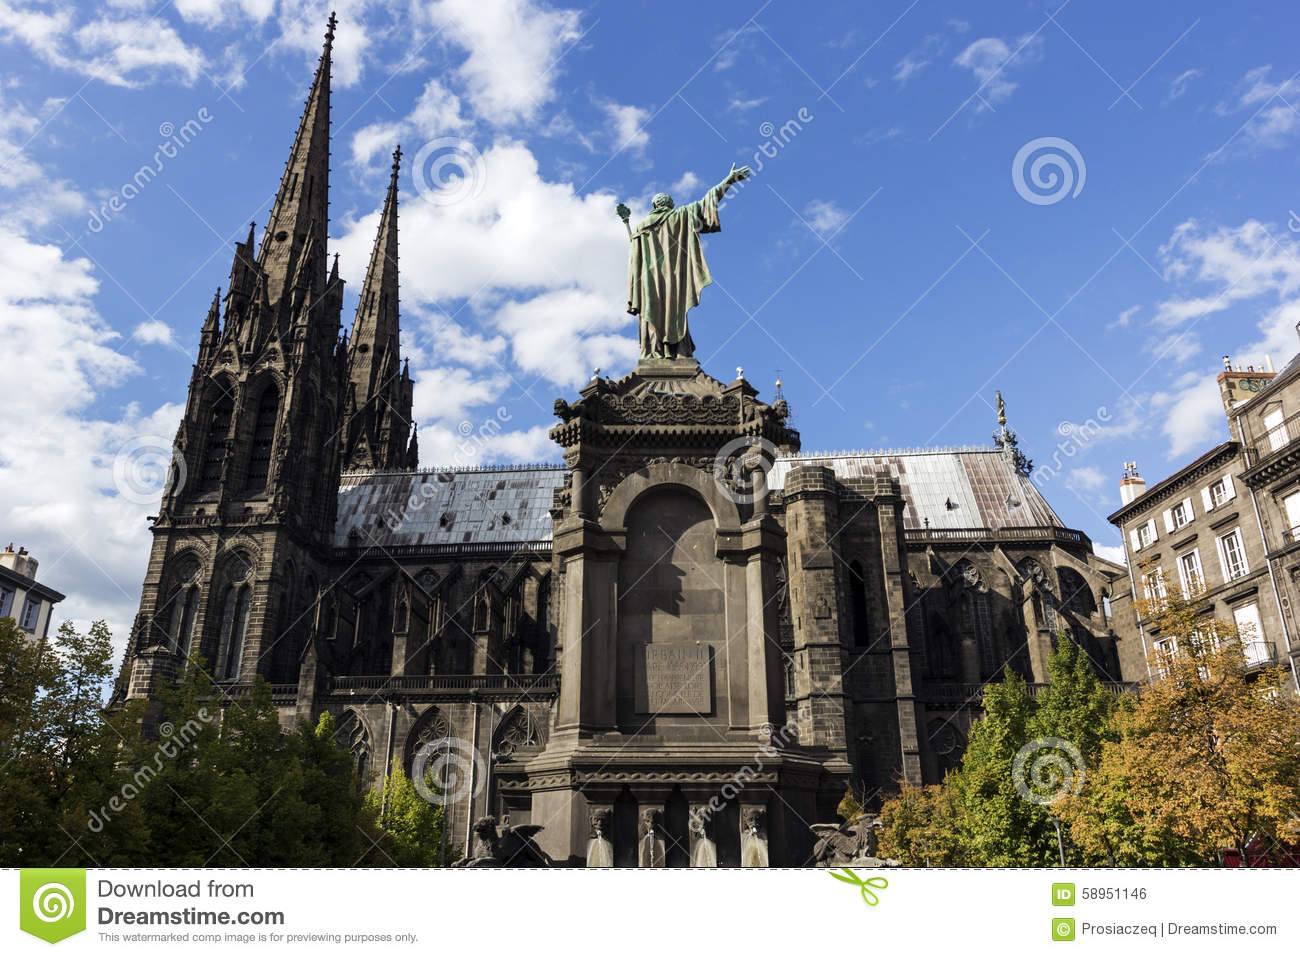 clermont ferrand cathedral in france stock photo image 58951146. Black Bedroom Furniture Sets. Home Design Ideas